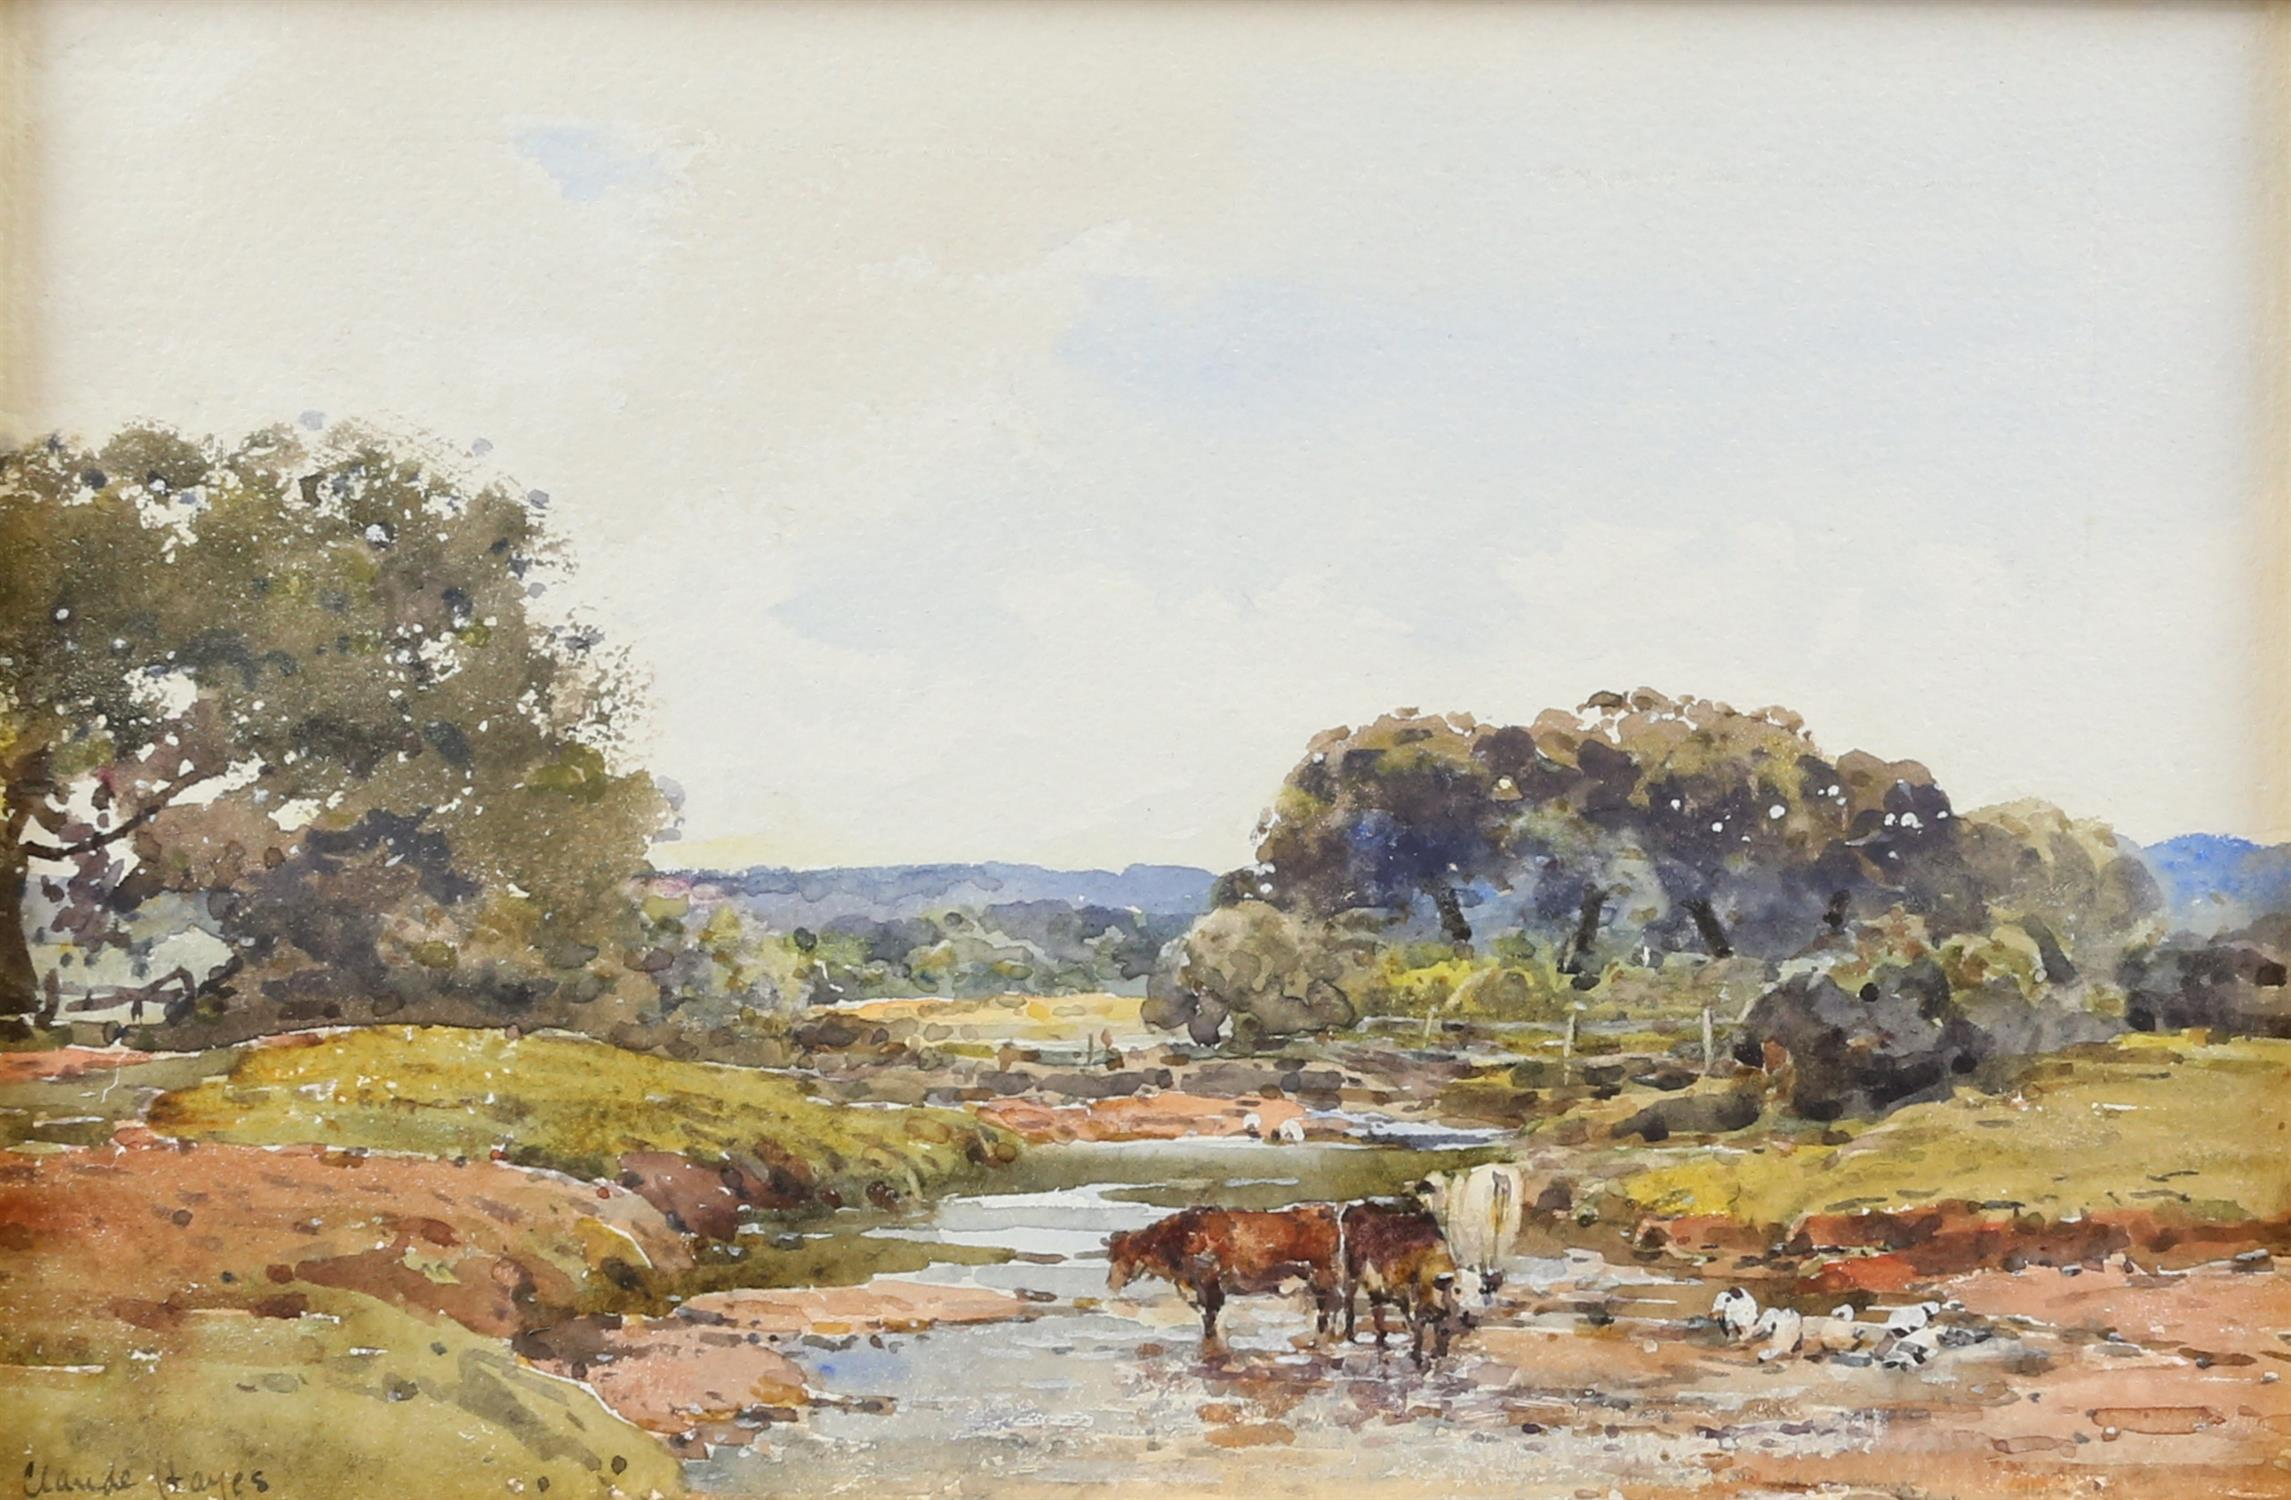 Claude Hayes (British, 1852-1922), landscape with cattle watering at a stream, signed, watercolour,